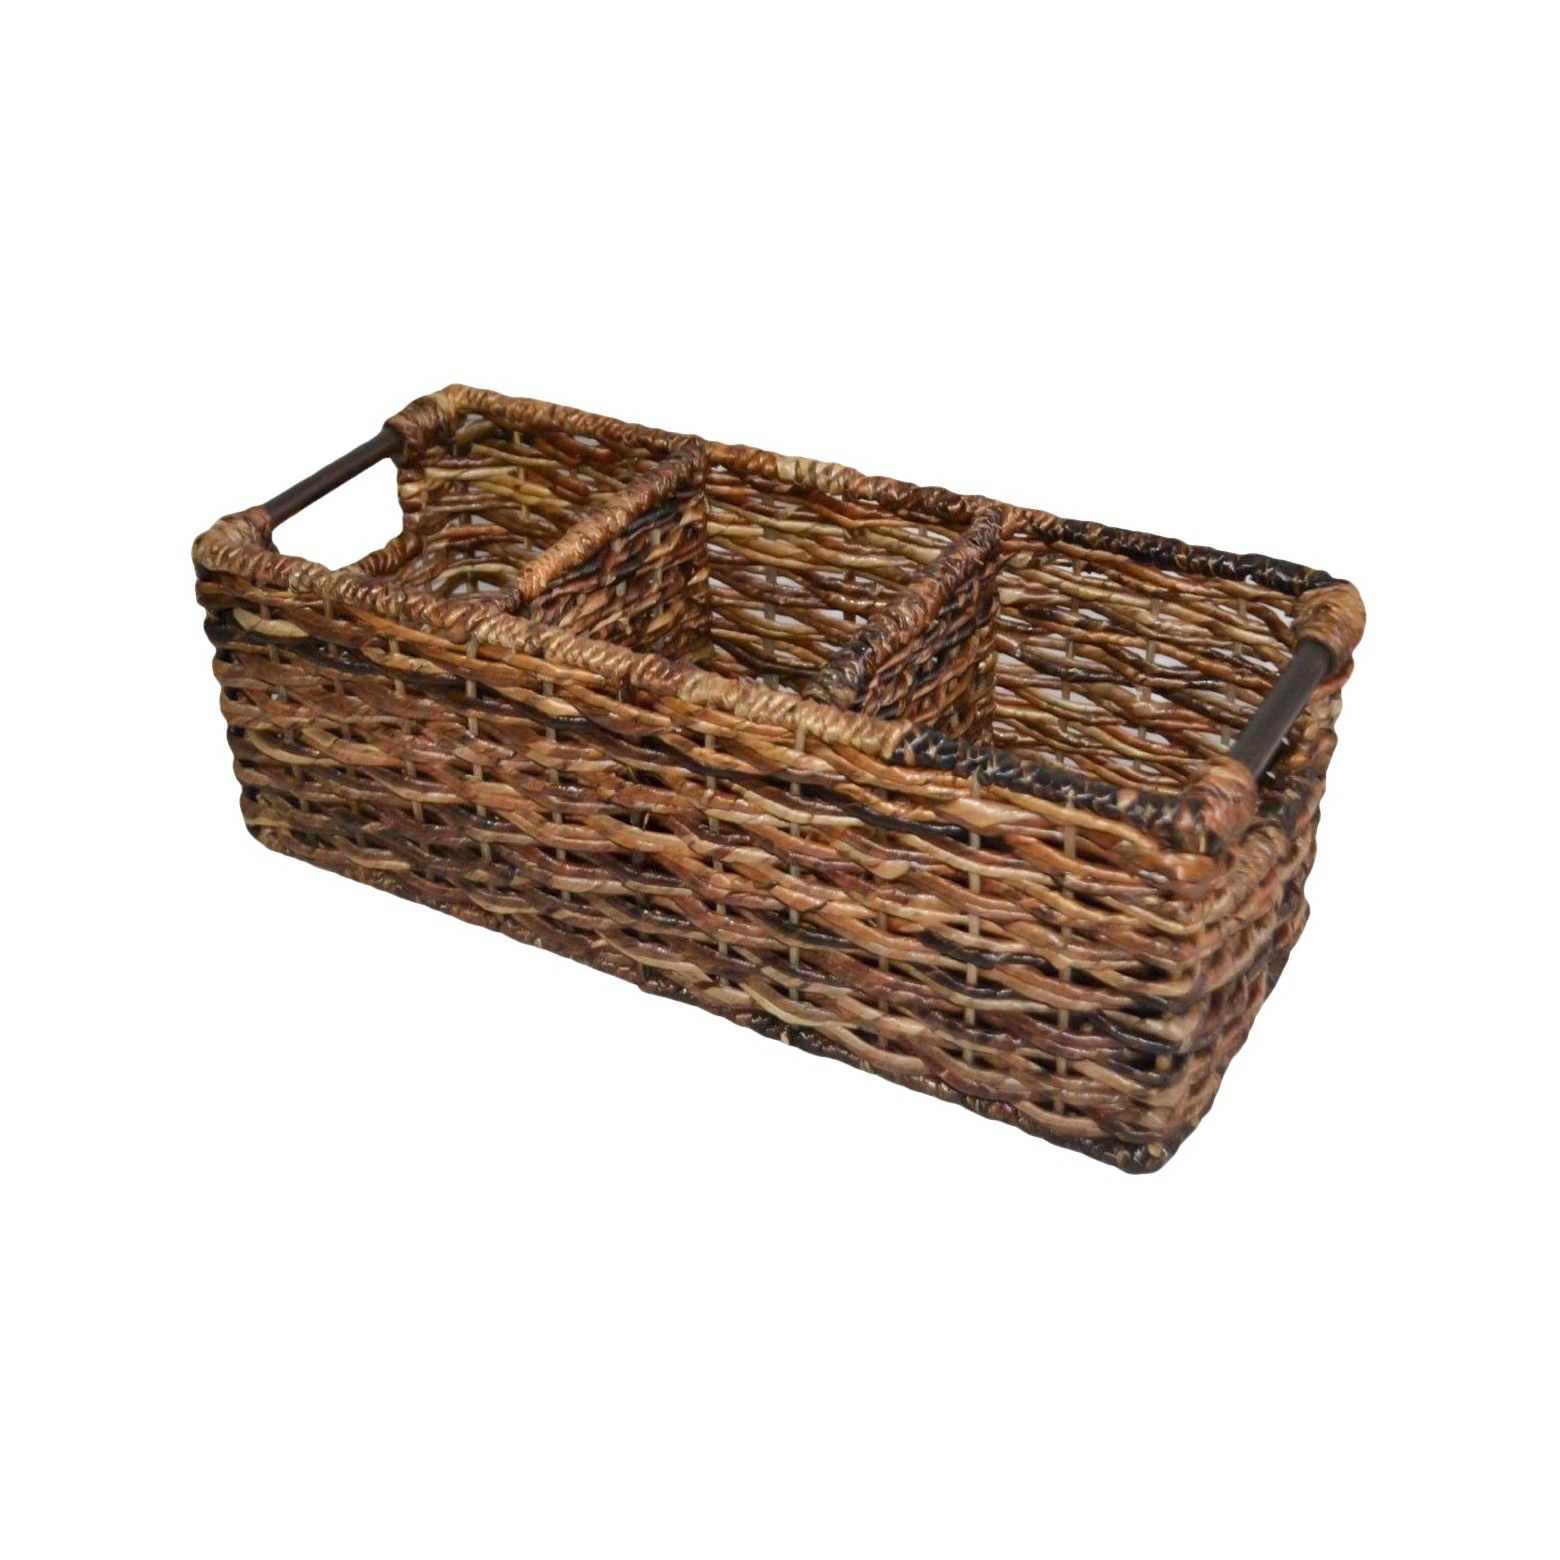 Exceptional ... Built In Handlesu003cbru003eu003cbru003eGet A Chic Place To Store Items With The Wicker  3 Compartment Media Bin In Dark Global Brown From Threshold. This Wicker  Basket ...